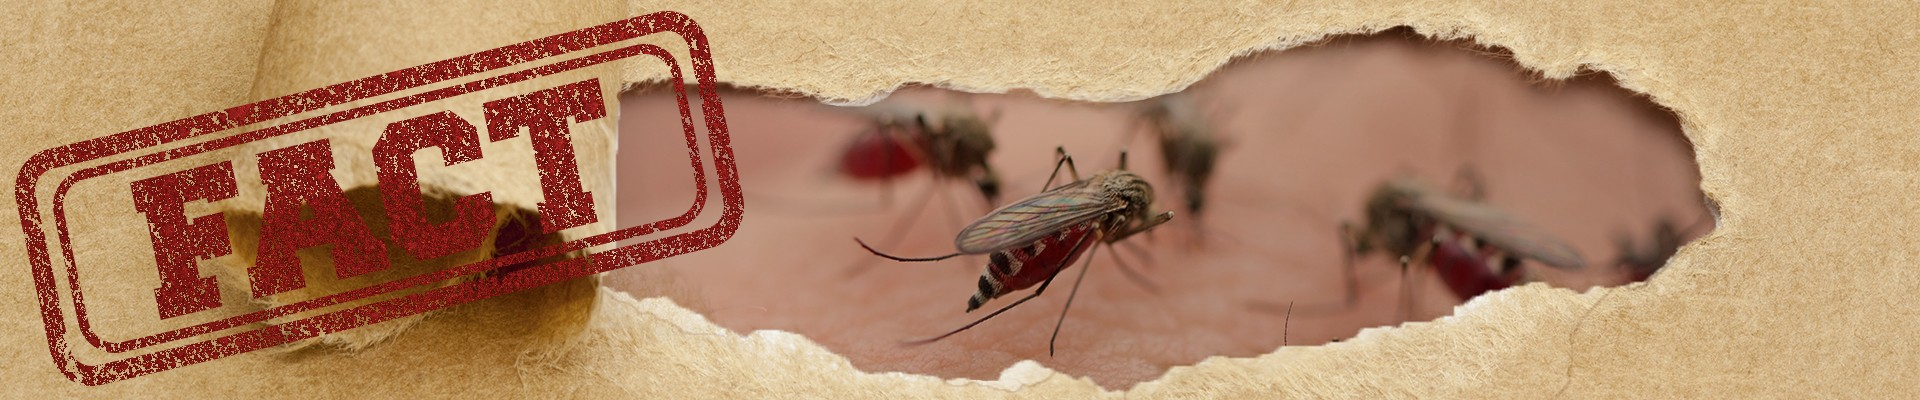 How to repel mosquitos while camping